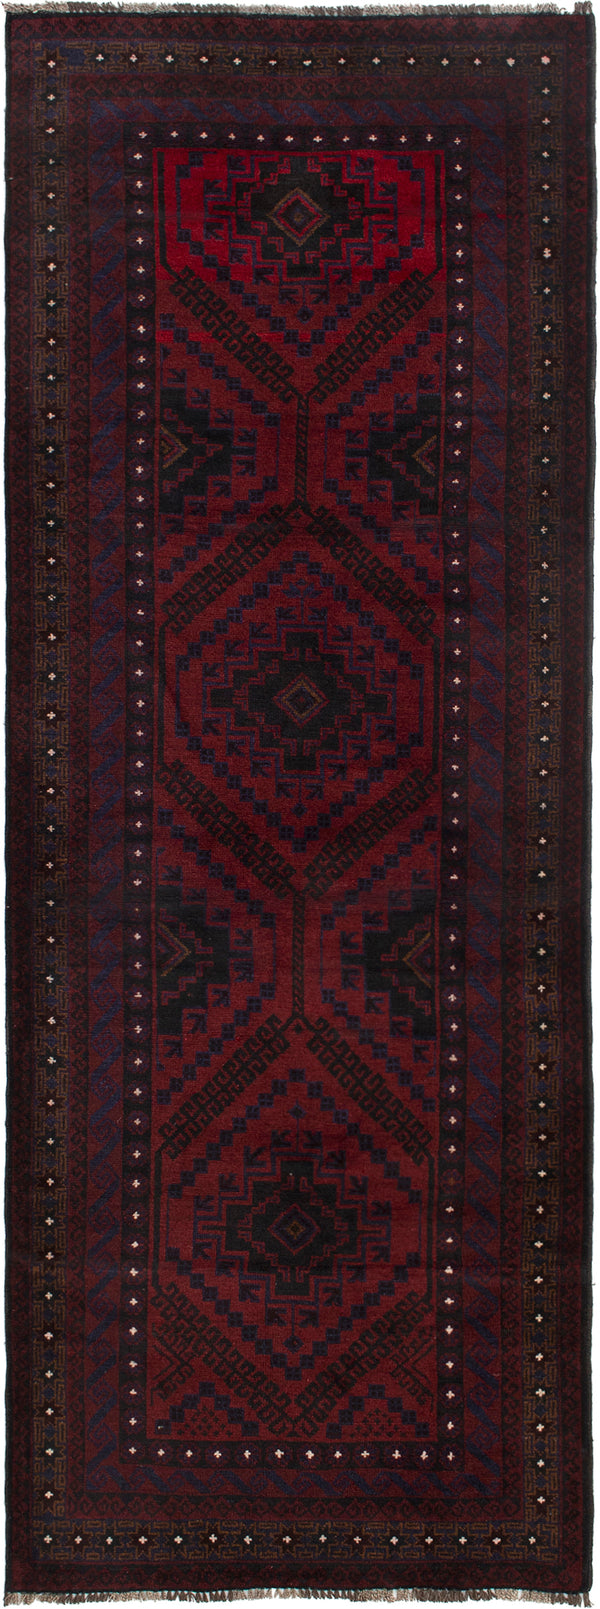 Hand-knotted Afghan Bordered  Tribal Finest-Rizbaft Runner rug  Dark Red 3.3 x 9.3